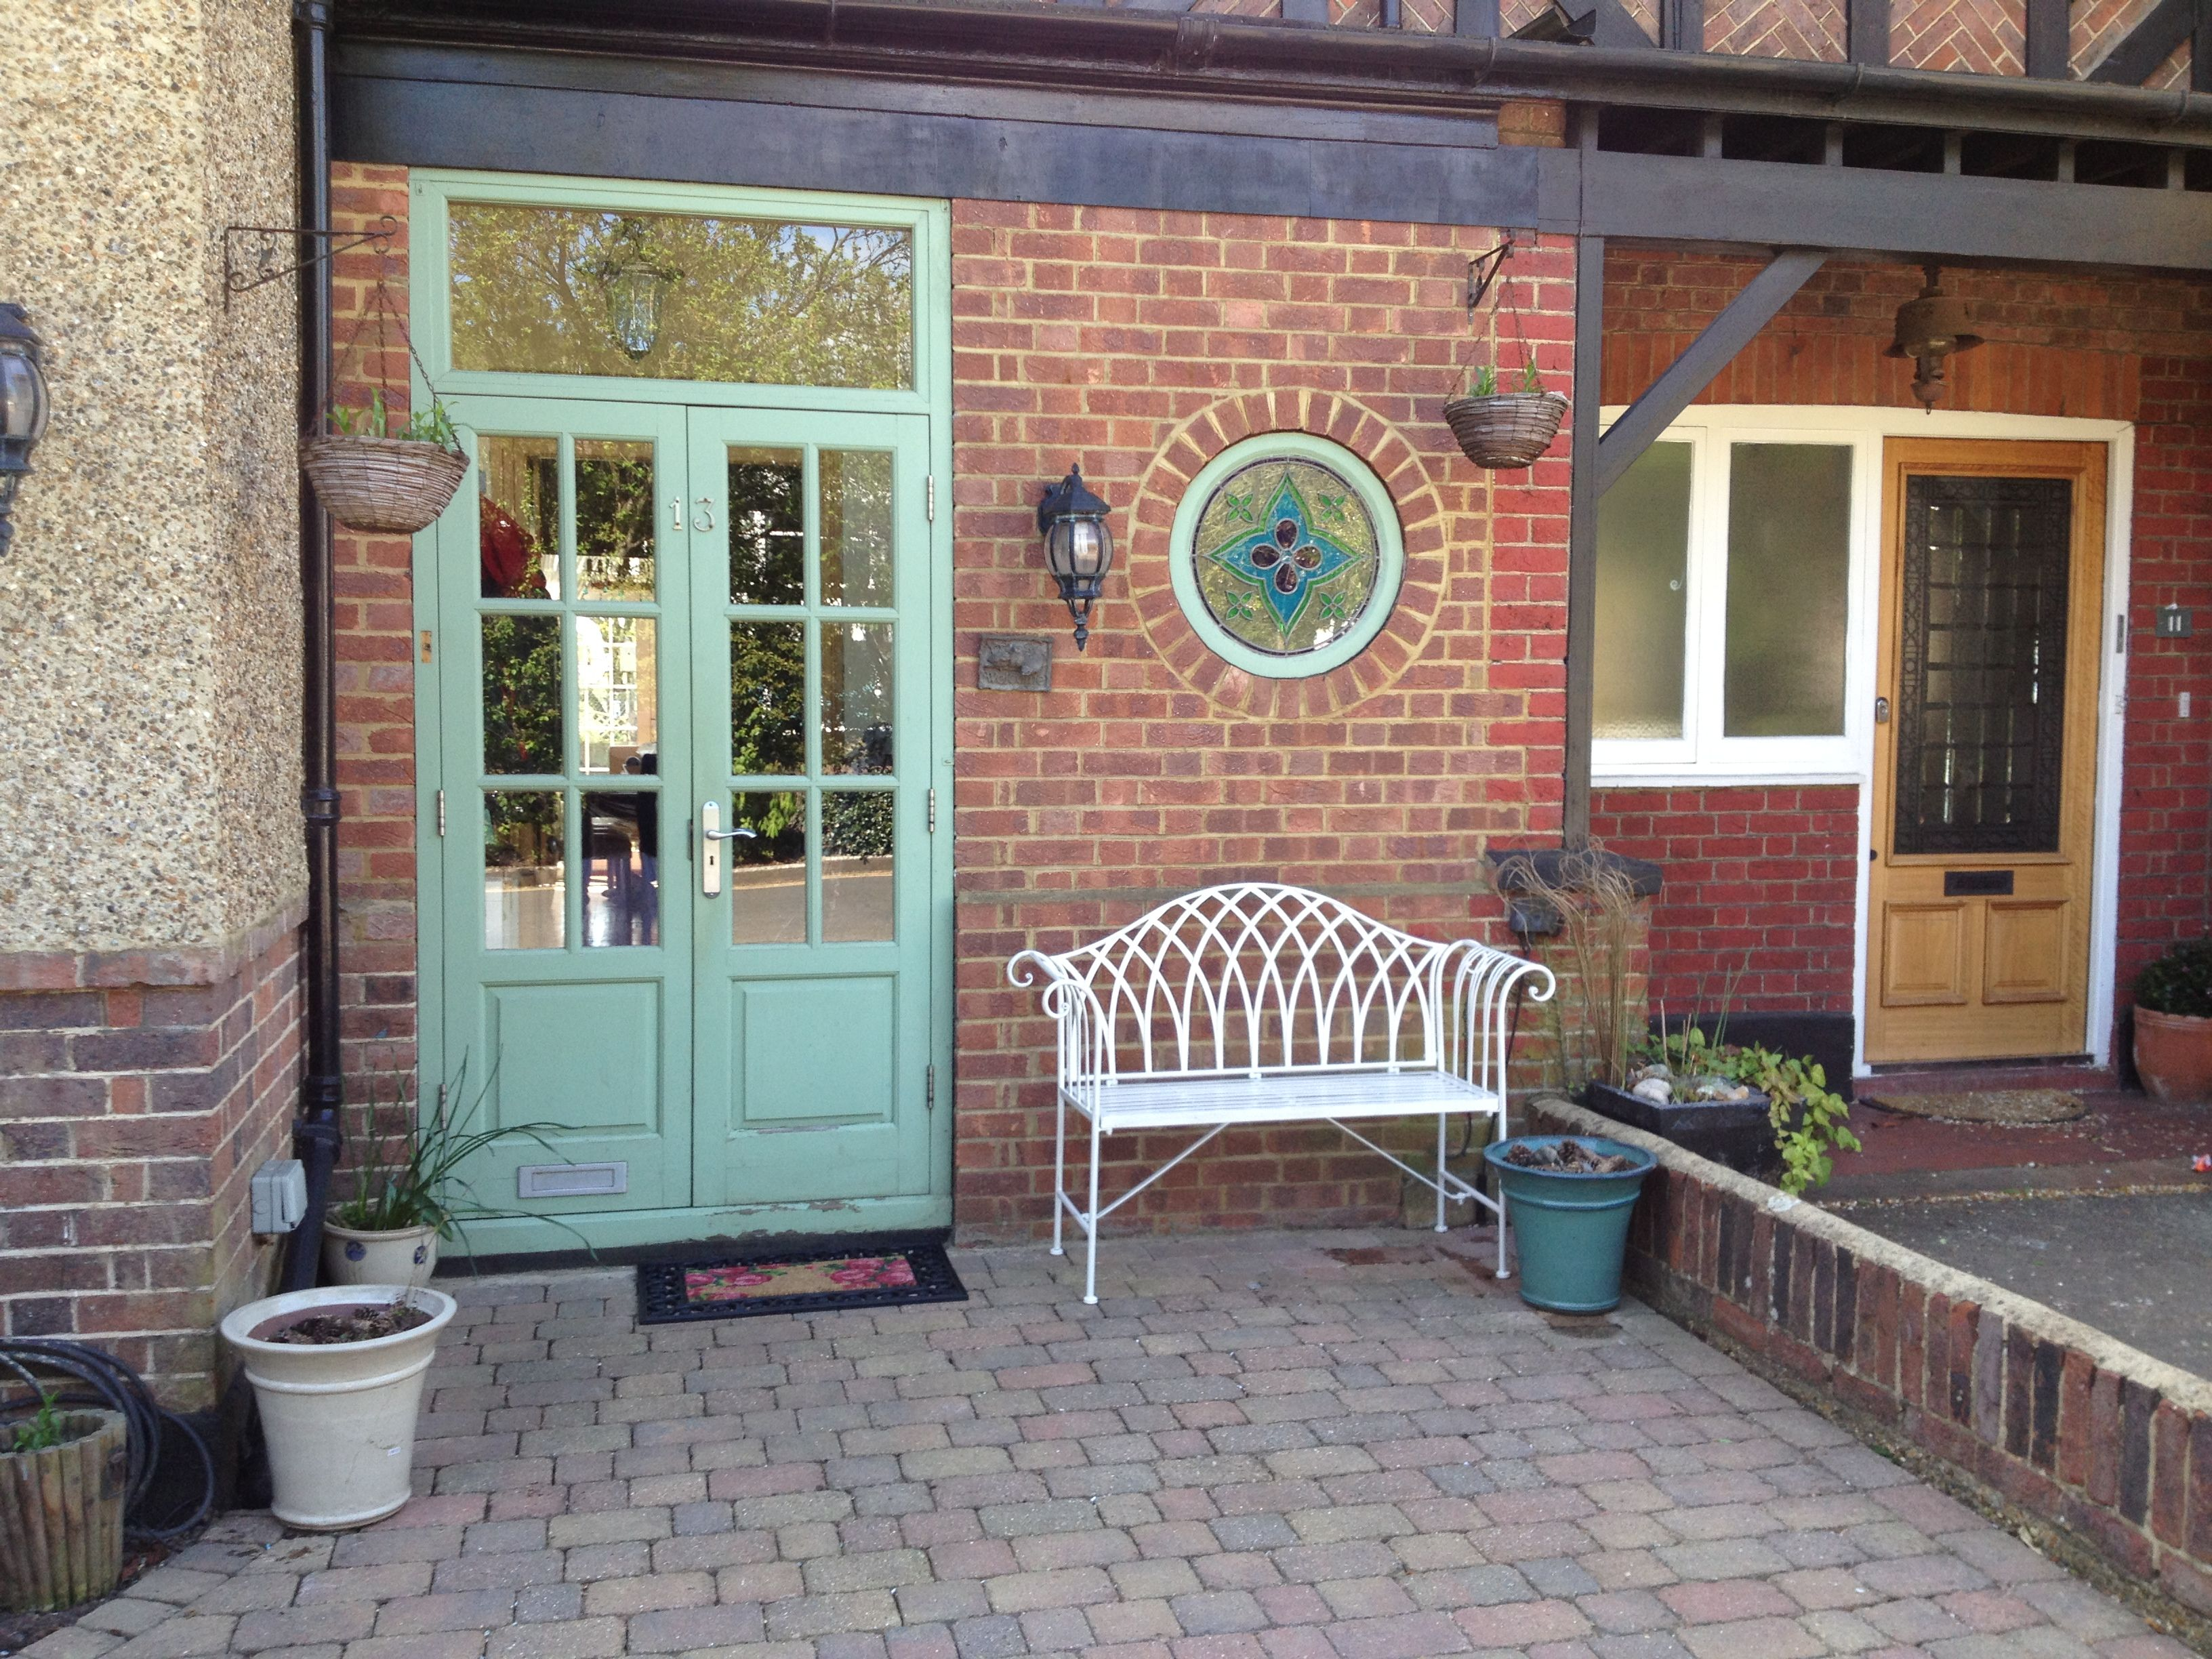 Entrance doors to porch semi-detached house North London suburb of Finchley Church End UK. | Terrazas u0026 Patios | Pinterest | Entrance doors ... & Entrance doors to porch semi-detached house North London suburb of ...